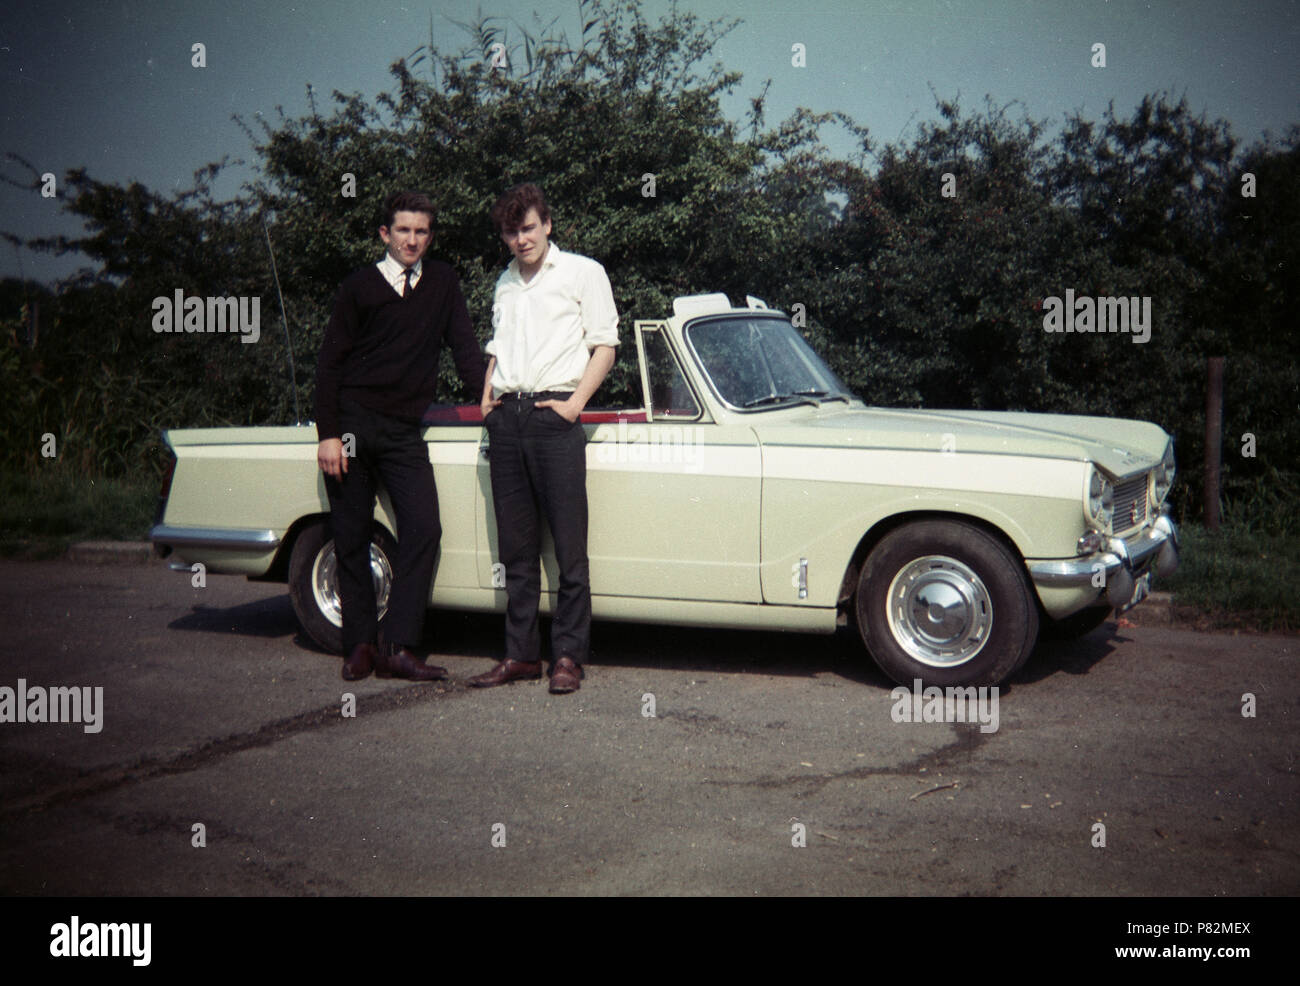 Late 1960s, two young men standing by a British made car, a Triumph Herald 13/60 convertible motorcar, england, UK, made by the Standard-Triumph Co of Coventry. This version, the drop-head, was considered the most attractive but by this time, the 1300 cc engine was under-powered compared to others. - Stock Image